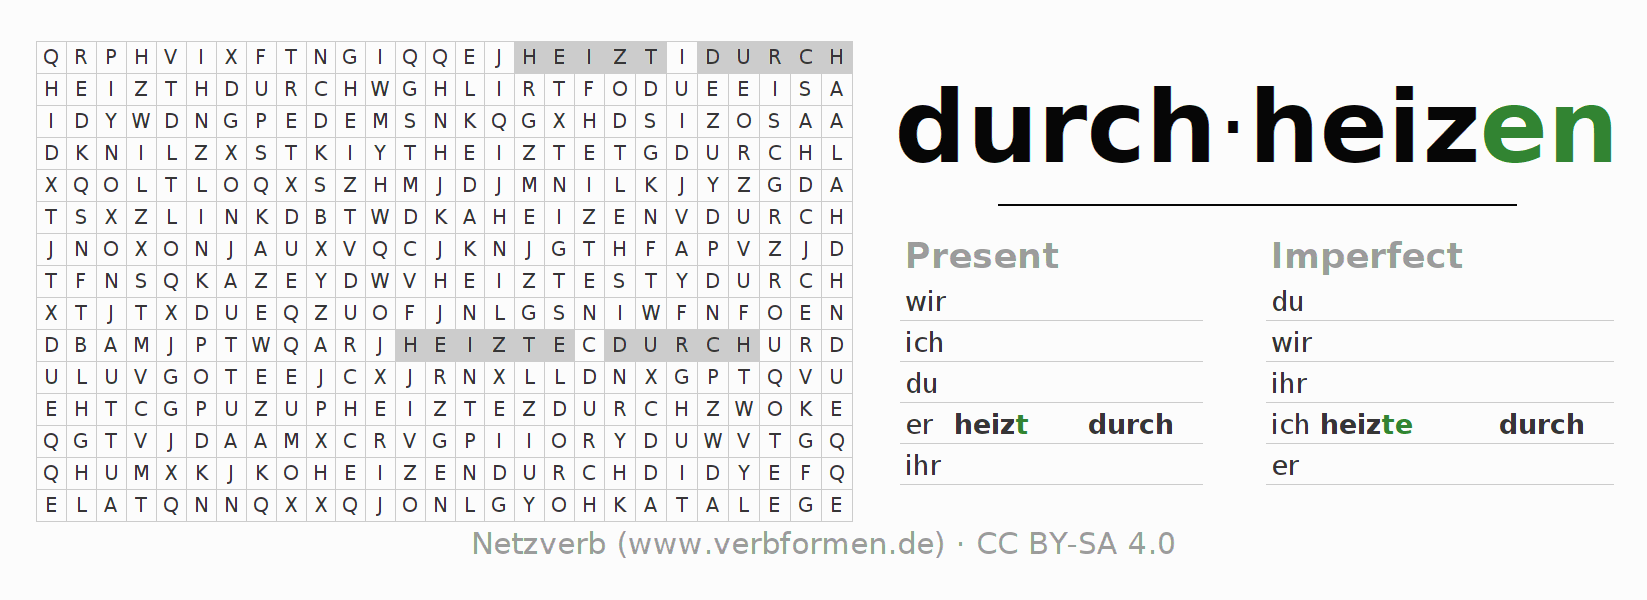 Word search puzzle for the conjugation of the verb durchheizen